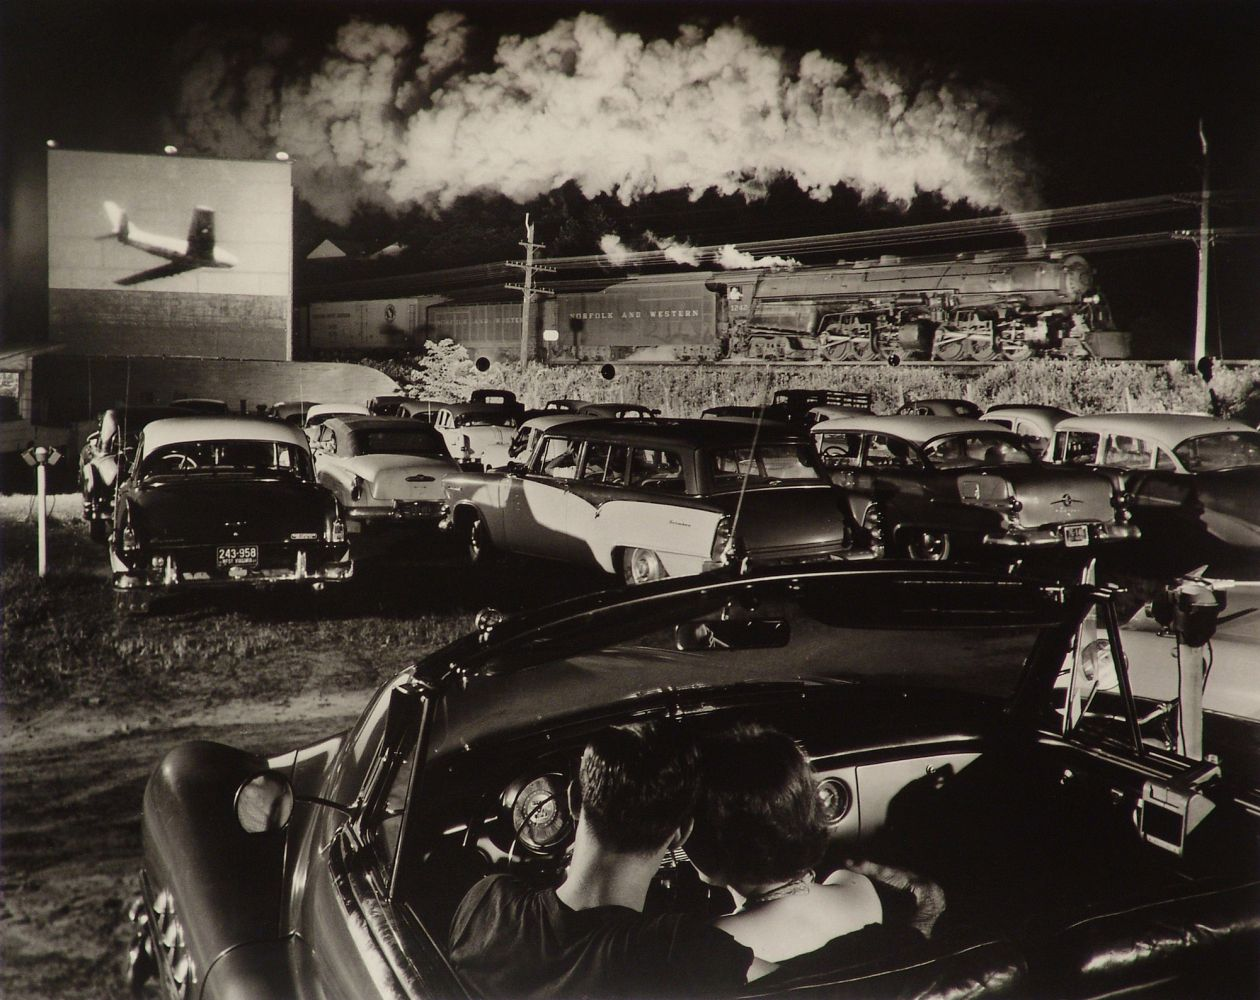 Hot Shot eastbound at Iaeger, West Virginia (1956) by O. Winston Link